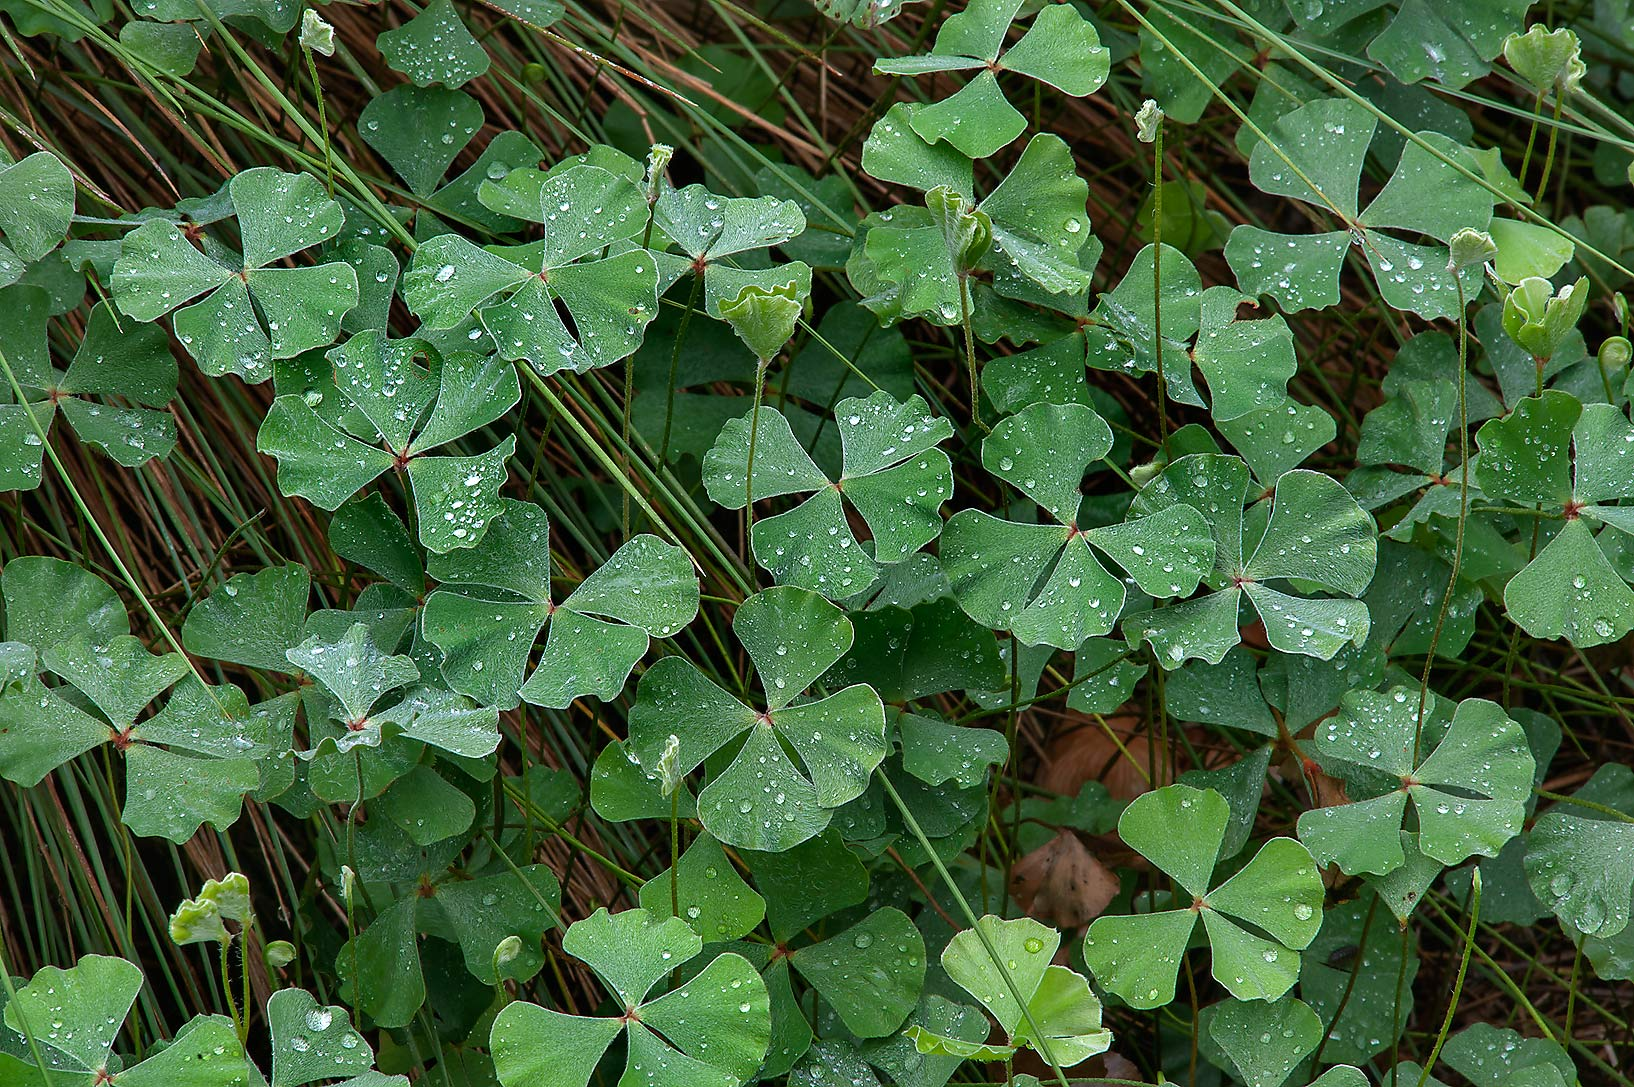 Wood sorrel like plant in Mercer Arboretum and...Gardens. Humble (Houston area), Texas